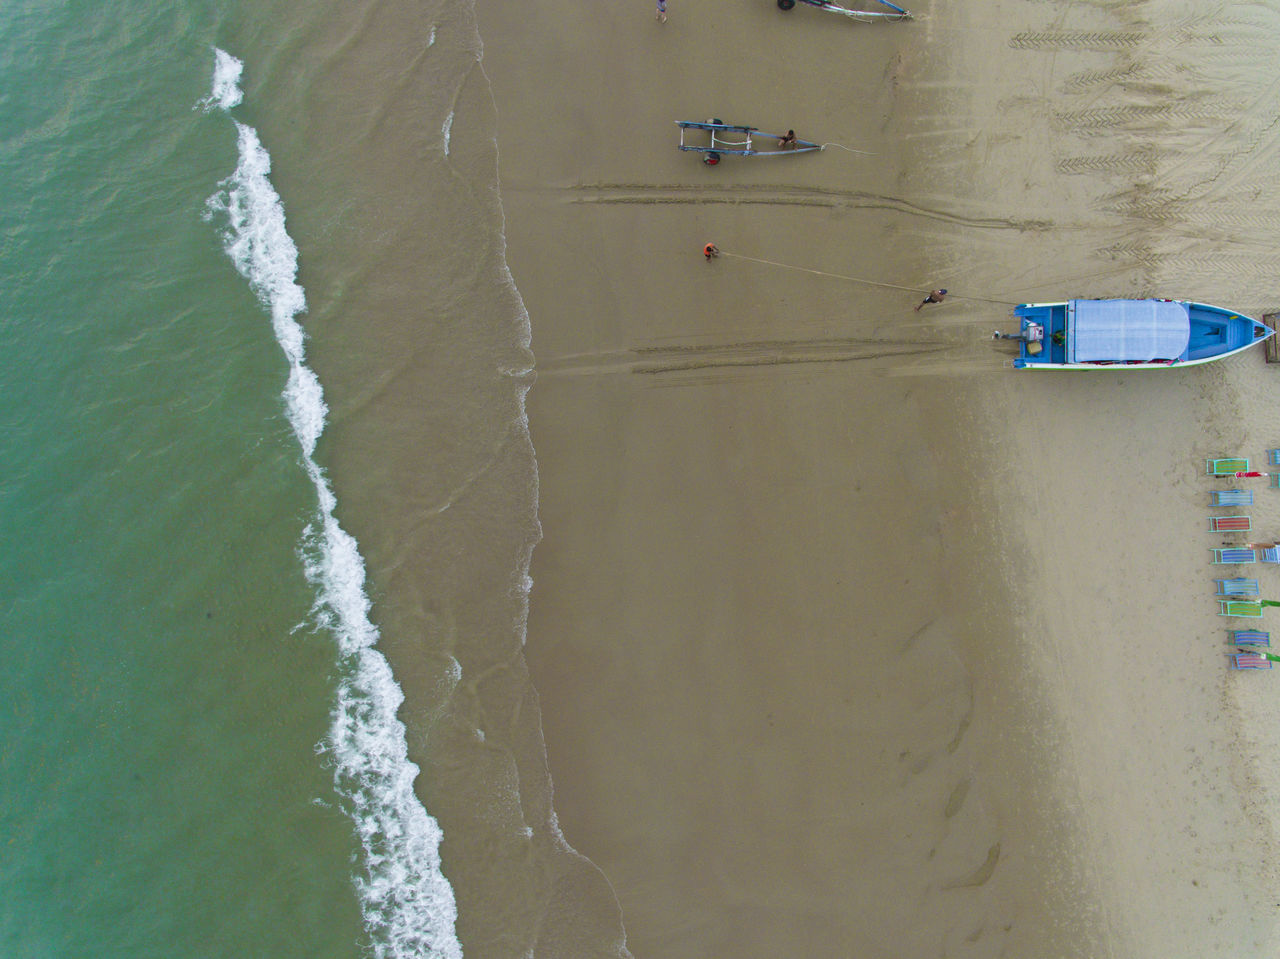 Boat, sand, waves, beach drone view from above Aerial View Waves And Sand Waves Below Looking Down From Above Looking Down Looking From Above Tourism Seaside Drone ViewHigh Angle View Outdoors Wave Sea Beach Looking Below Nature Split Layers Layers And Colors Layers And Textures Boat Ocean Flying High